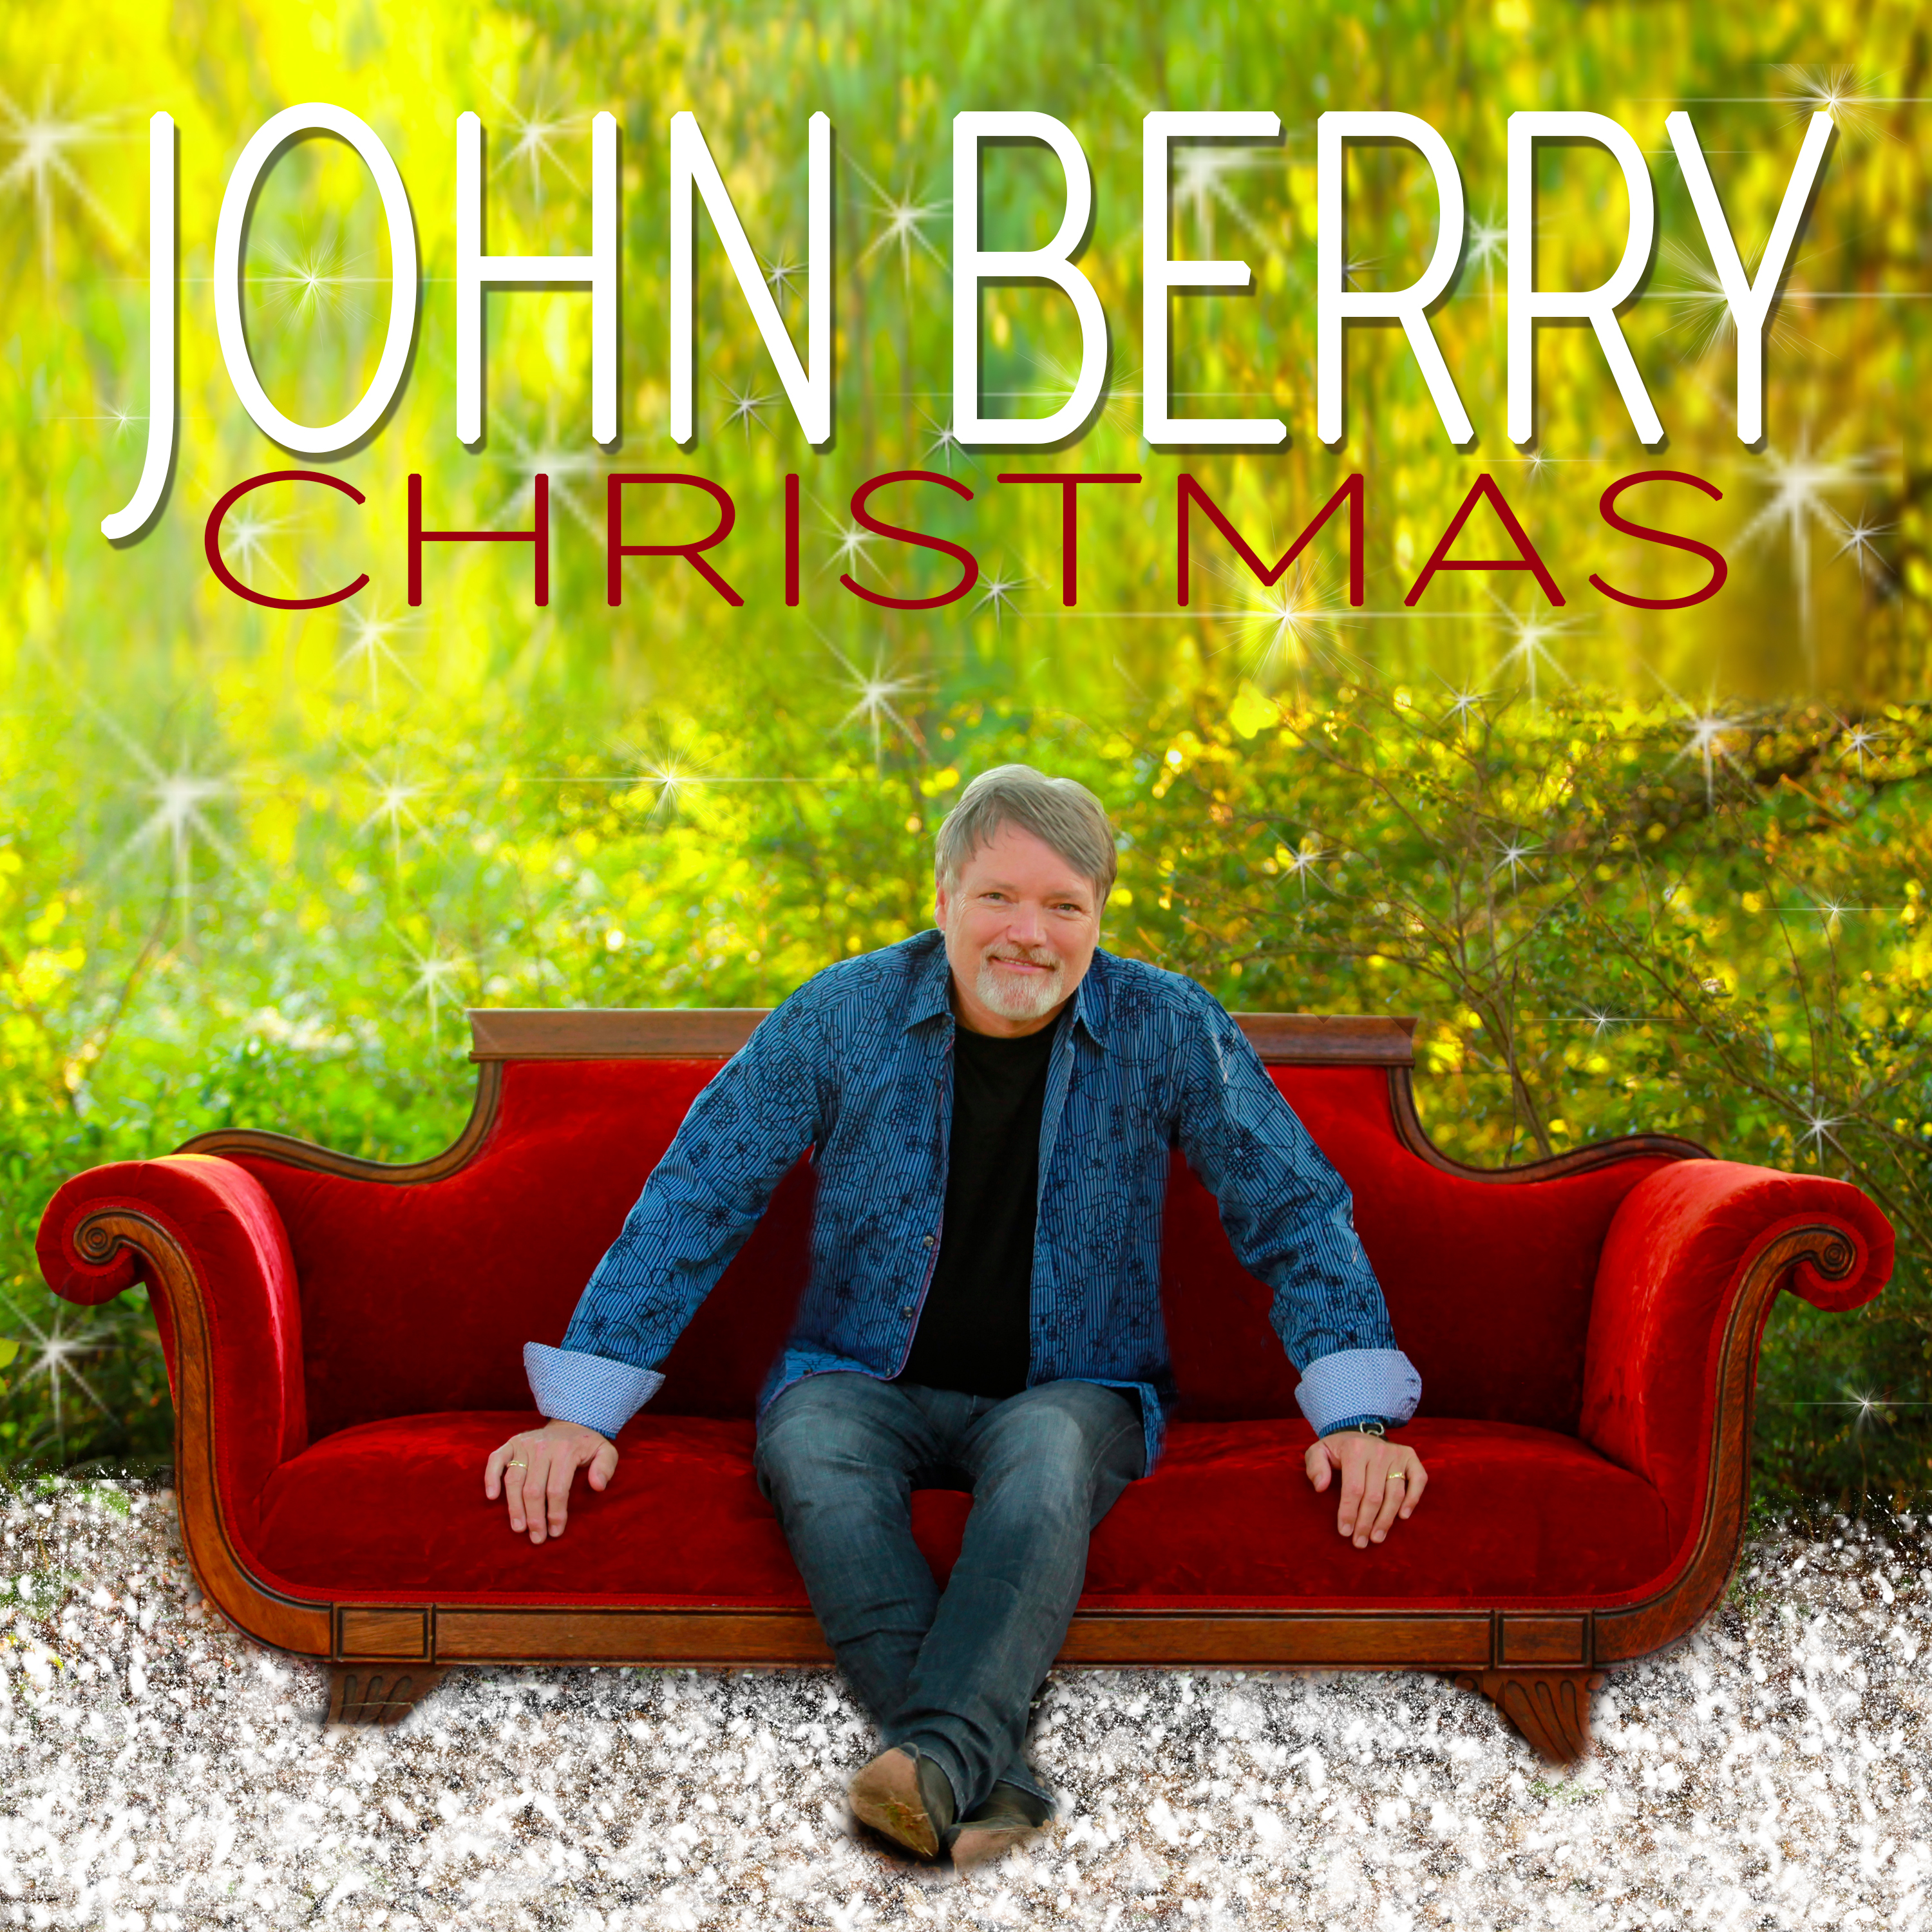 John Berry Celebrates 20 Years of Christmas with New Album & Tour